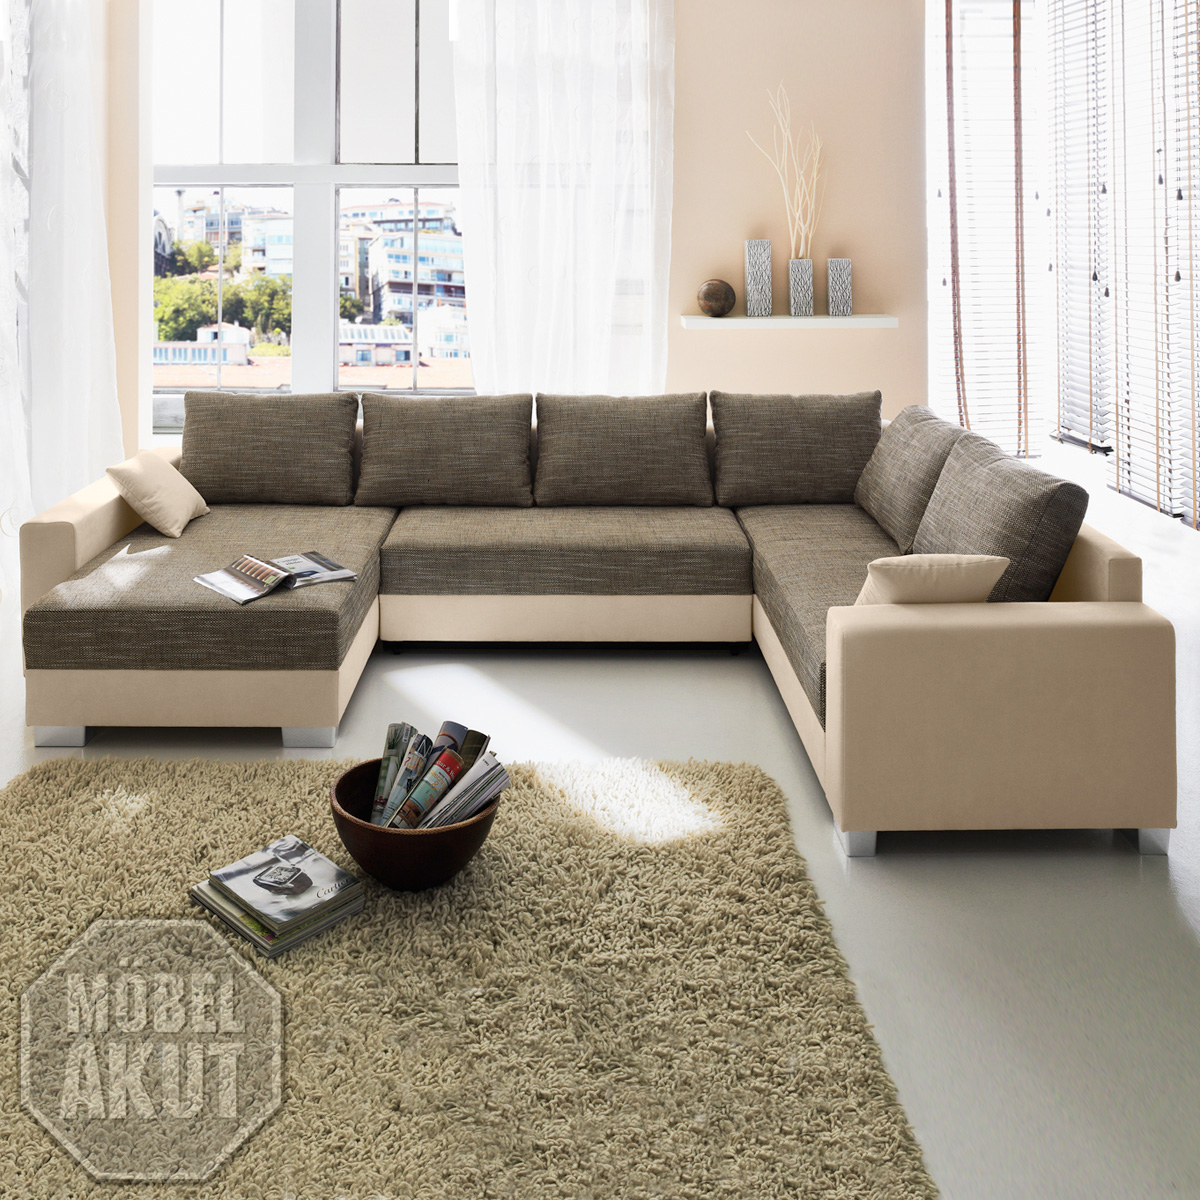 wohnlandschaft abby in beige braun sofa mit ottomane und bettkasten ebay. Black Bedroom Furniture Sets. Home Design Ideas